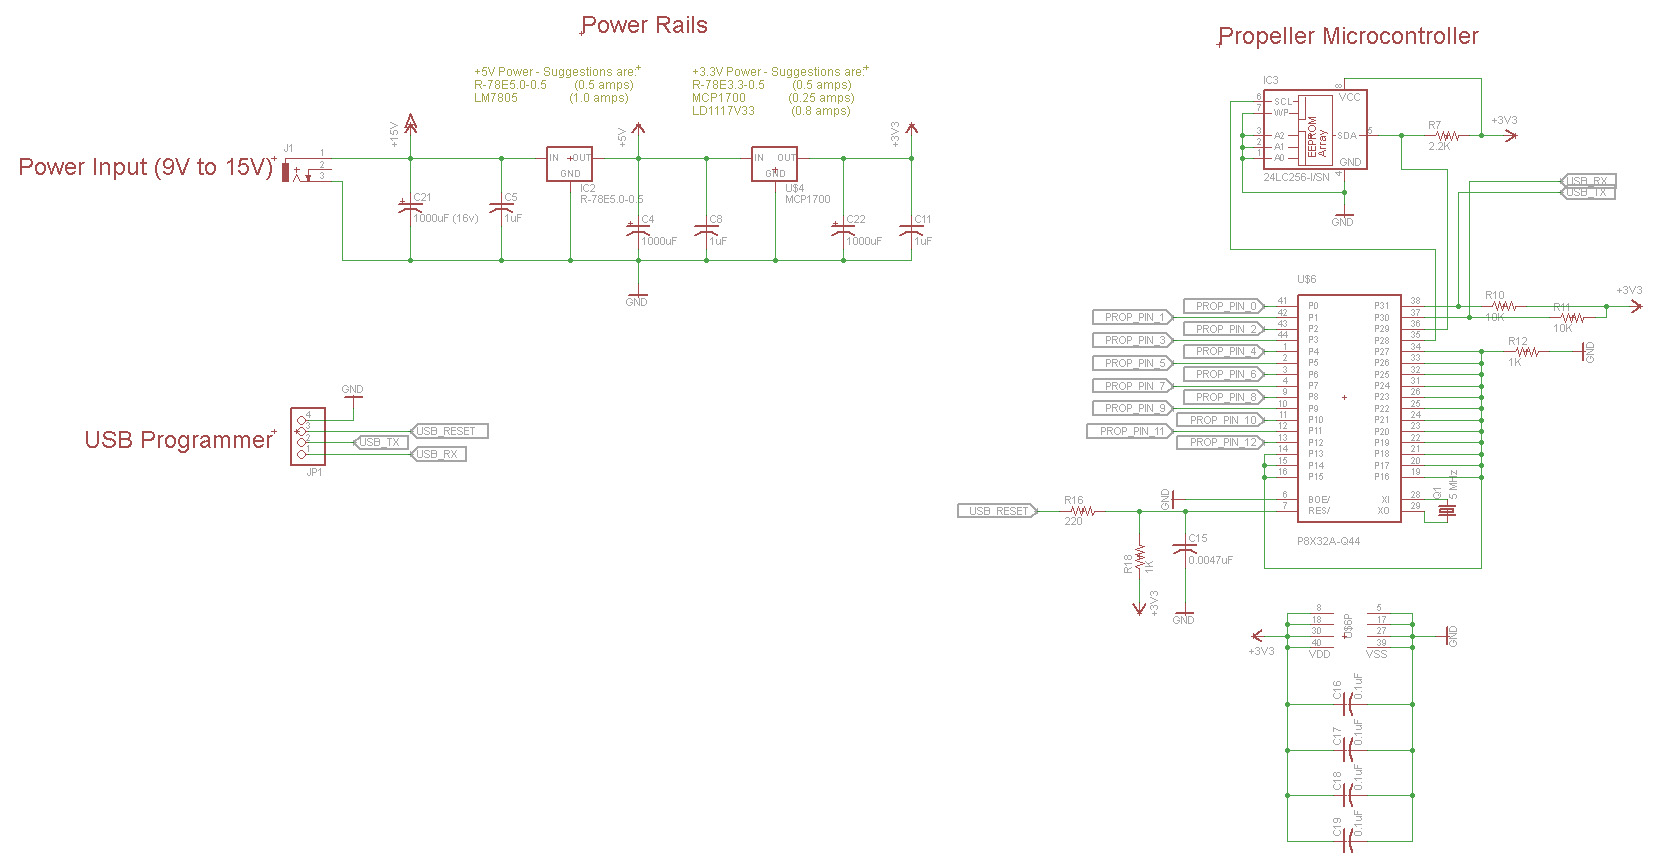 propeller circuit template and best practices  u2014 parallax